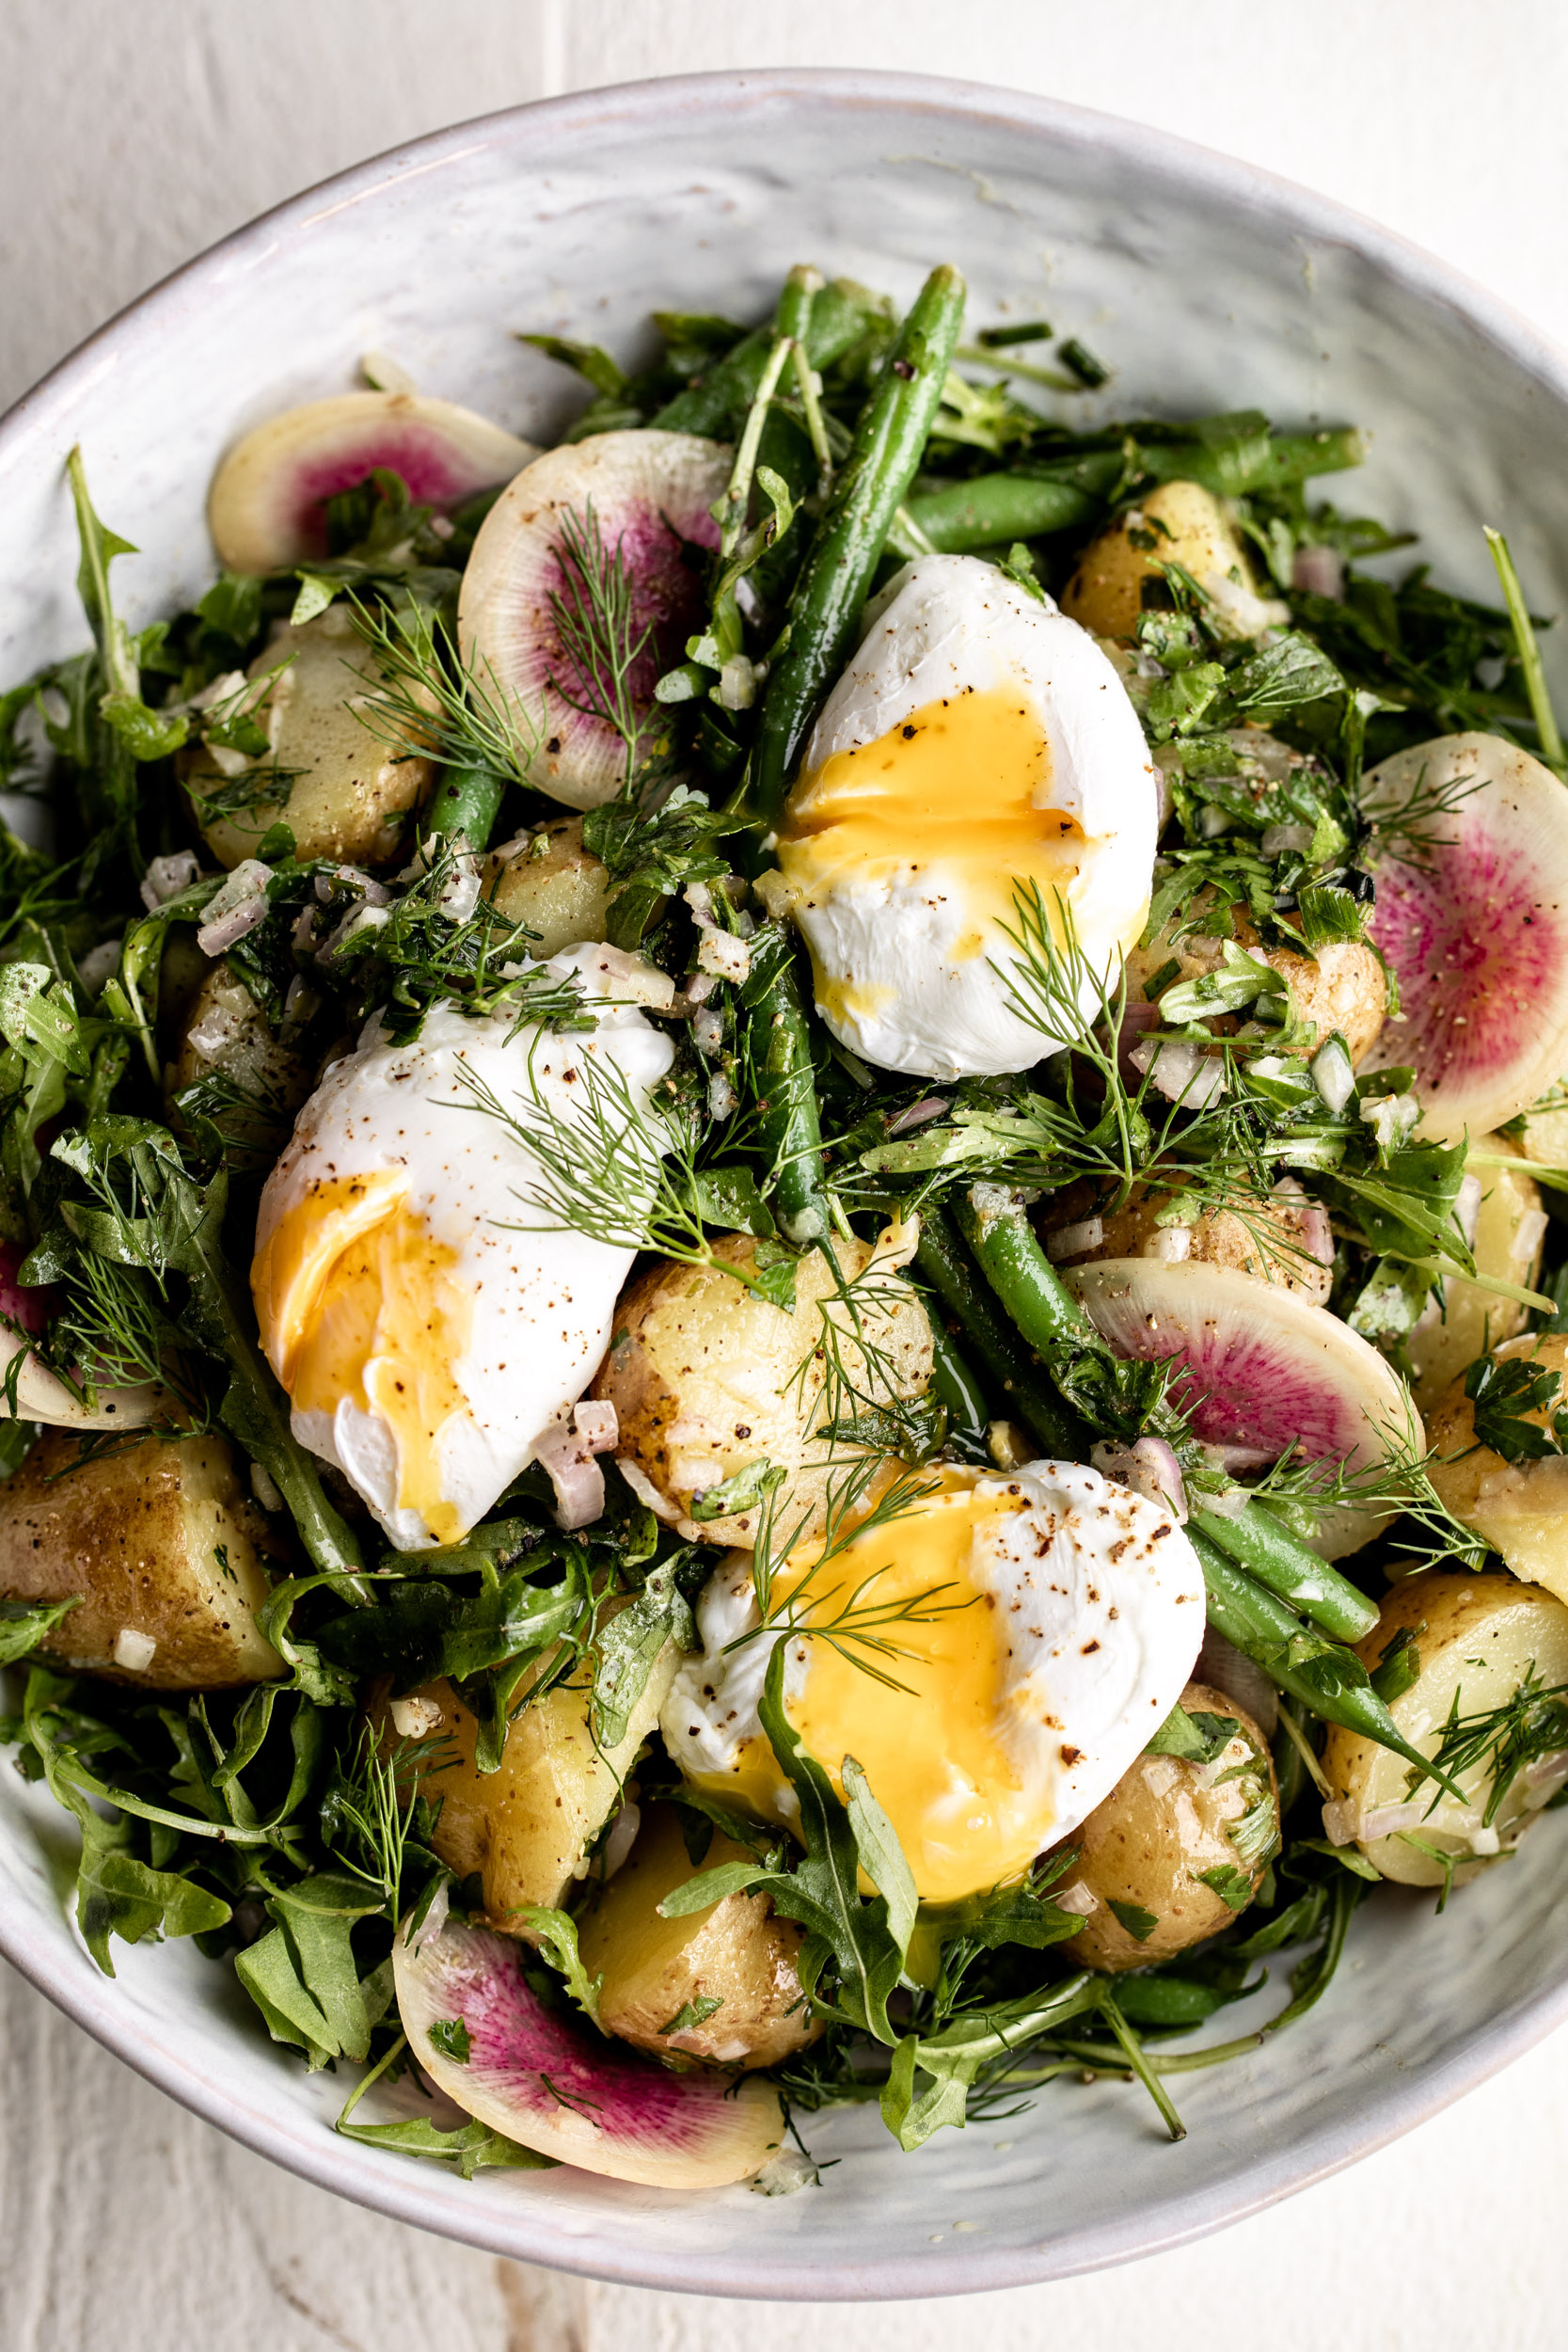 French Potato Salad with Green Beans | 17 Recipes for Your Easter Celebration